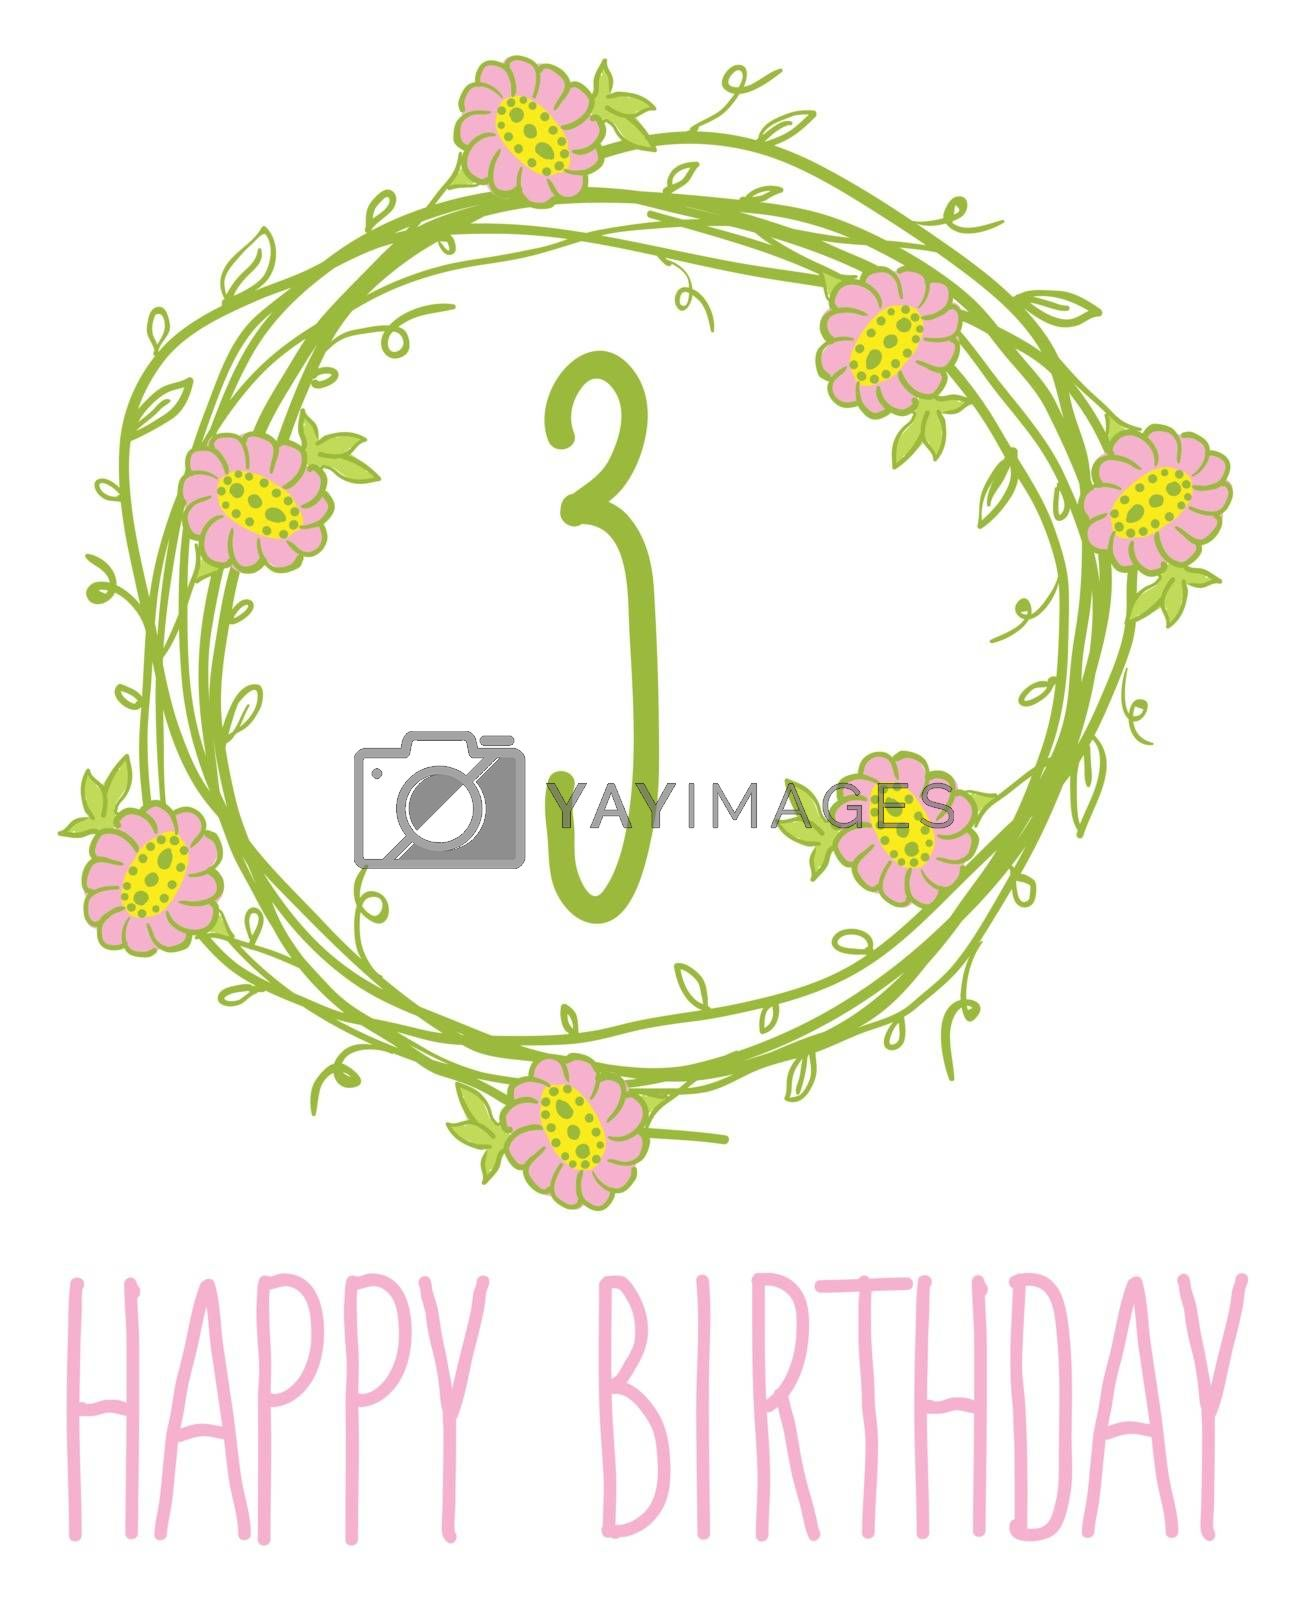 Happy birthday card invitation Set of floral graphic design elements candle number editable